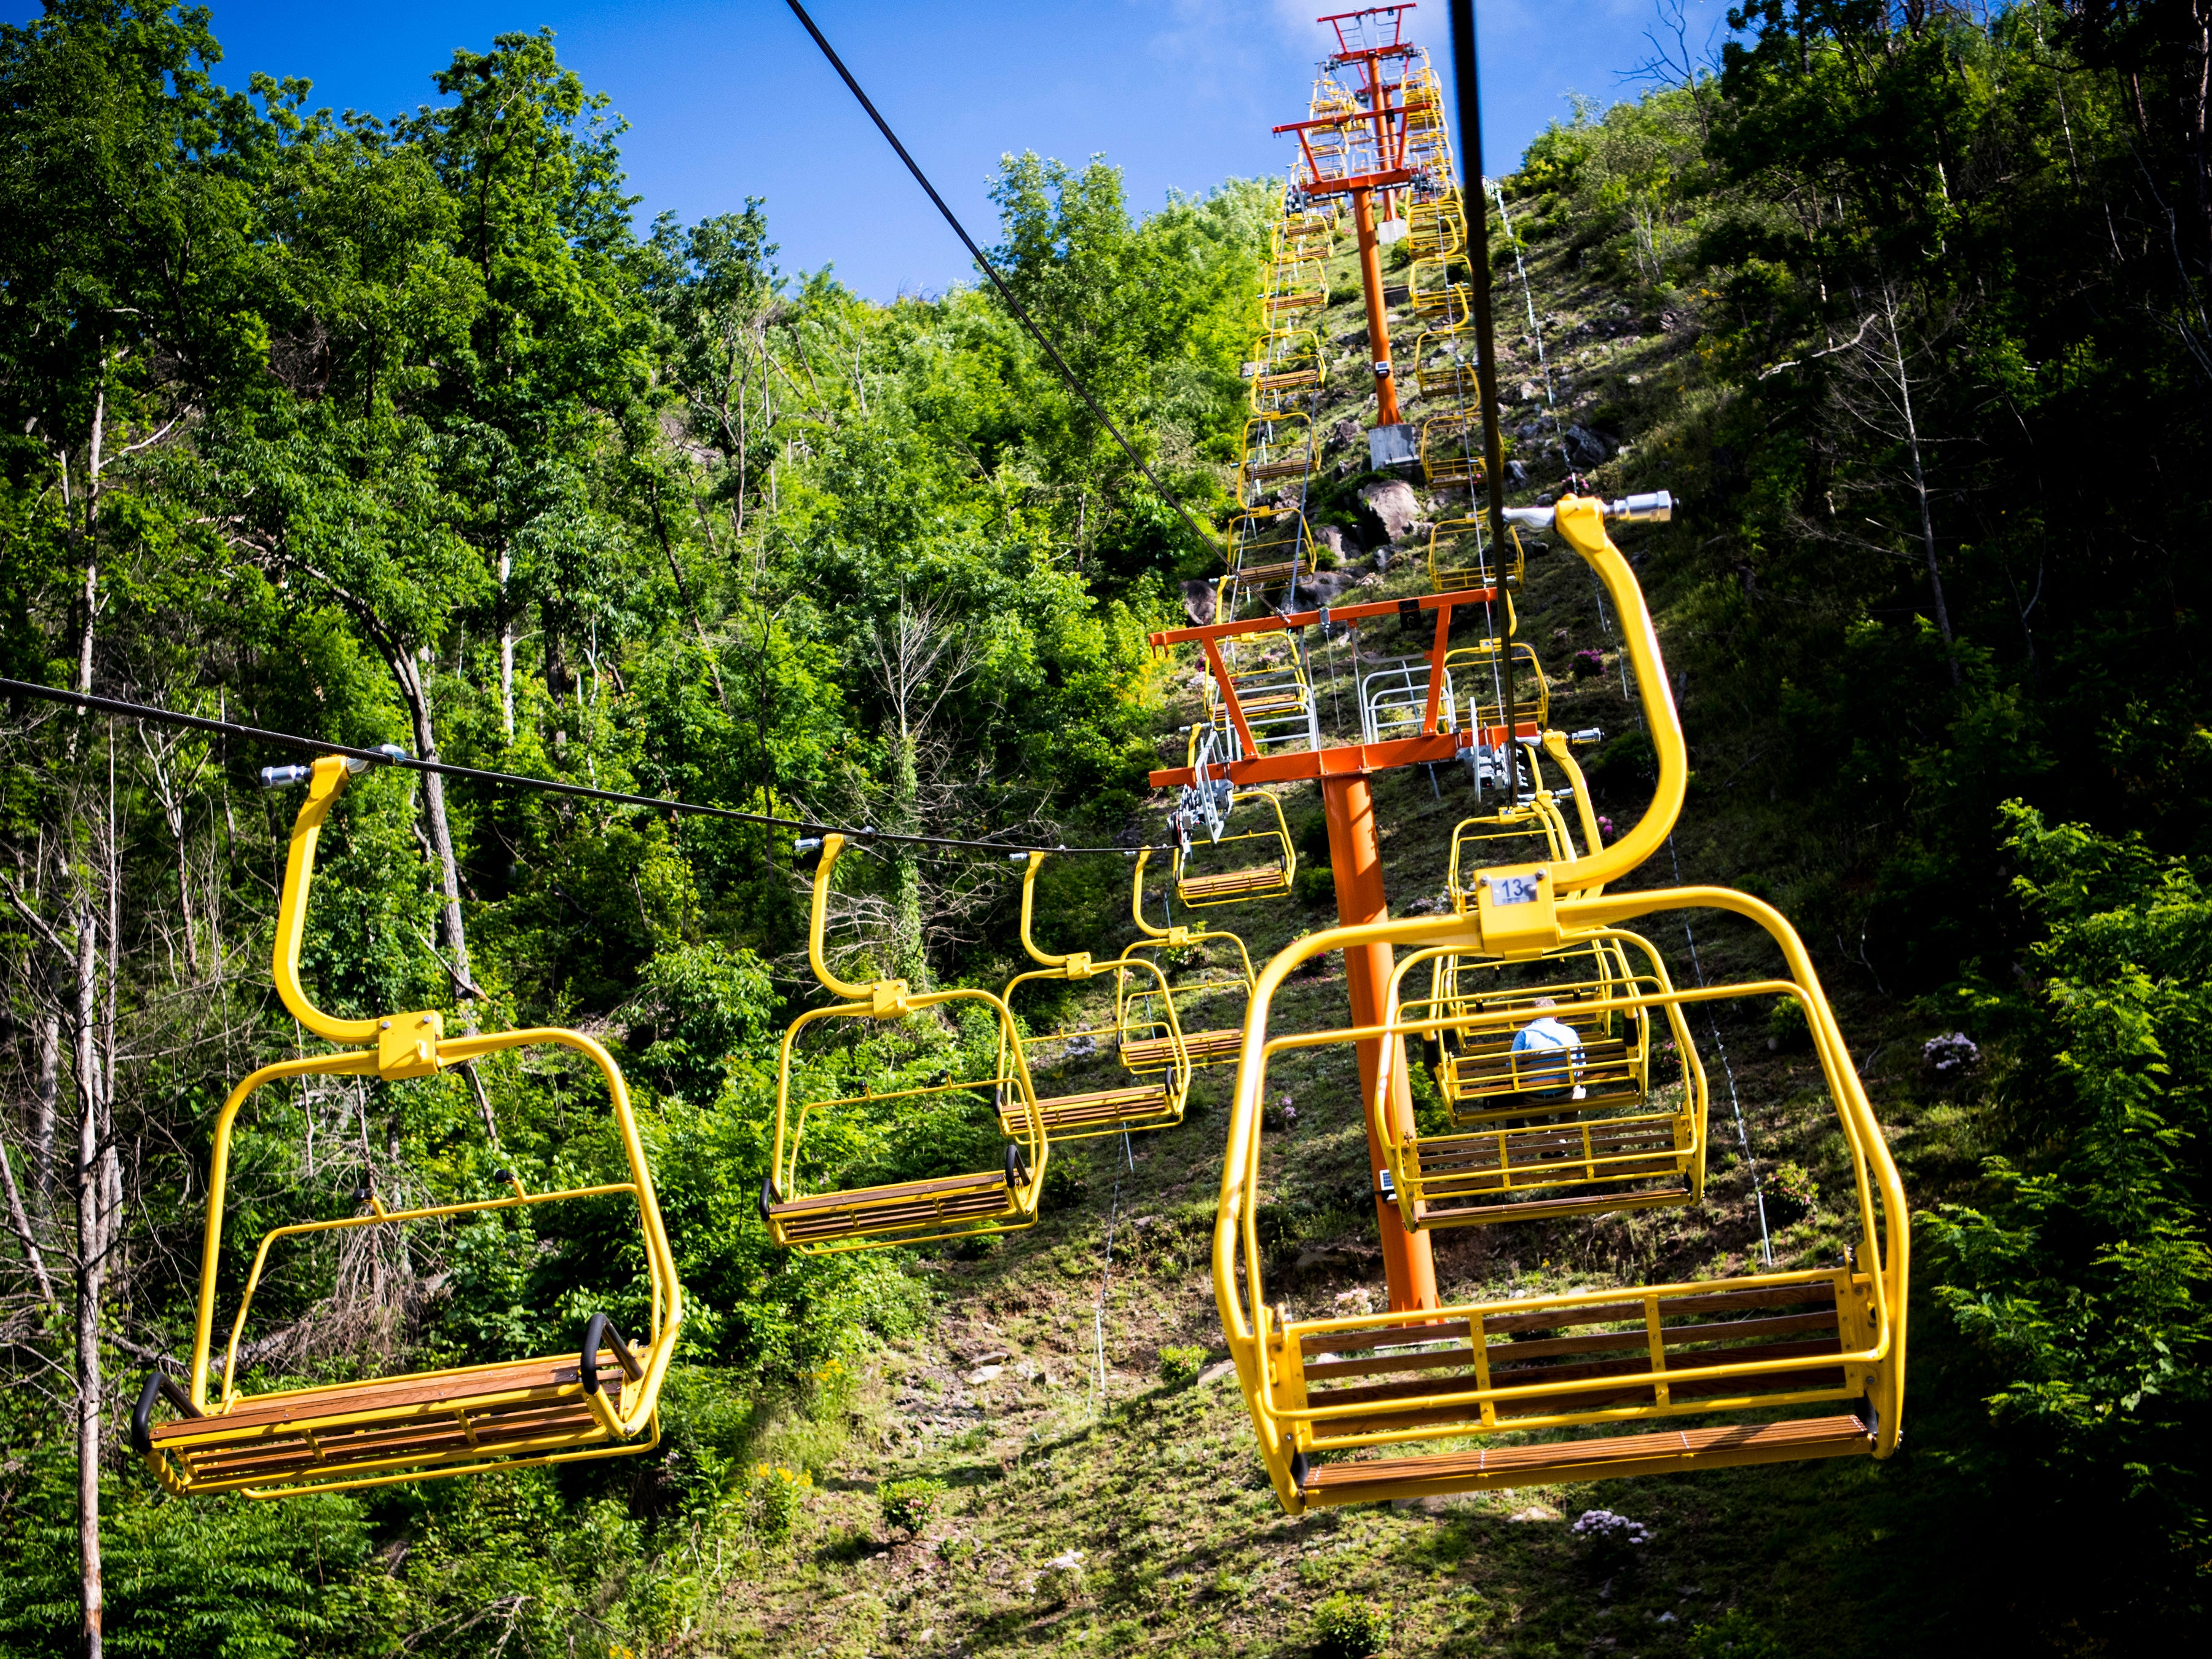 Guests wishing to access the Gatlinburg SkyBridge must ride the Gatlinburg SkyLift to the top.